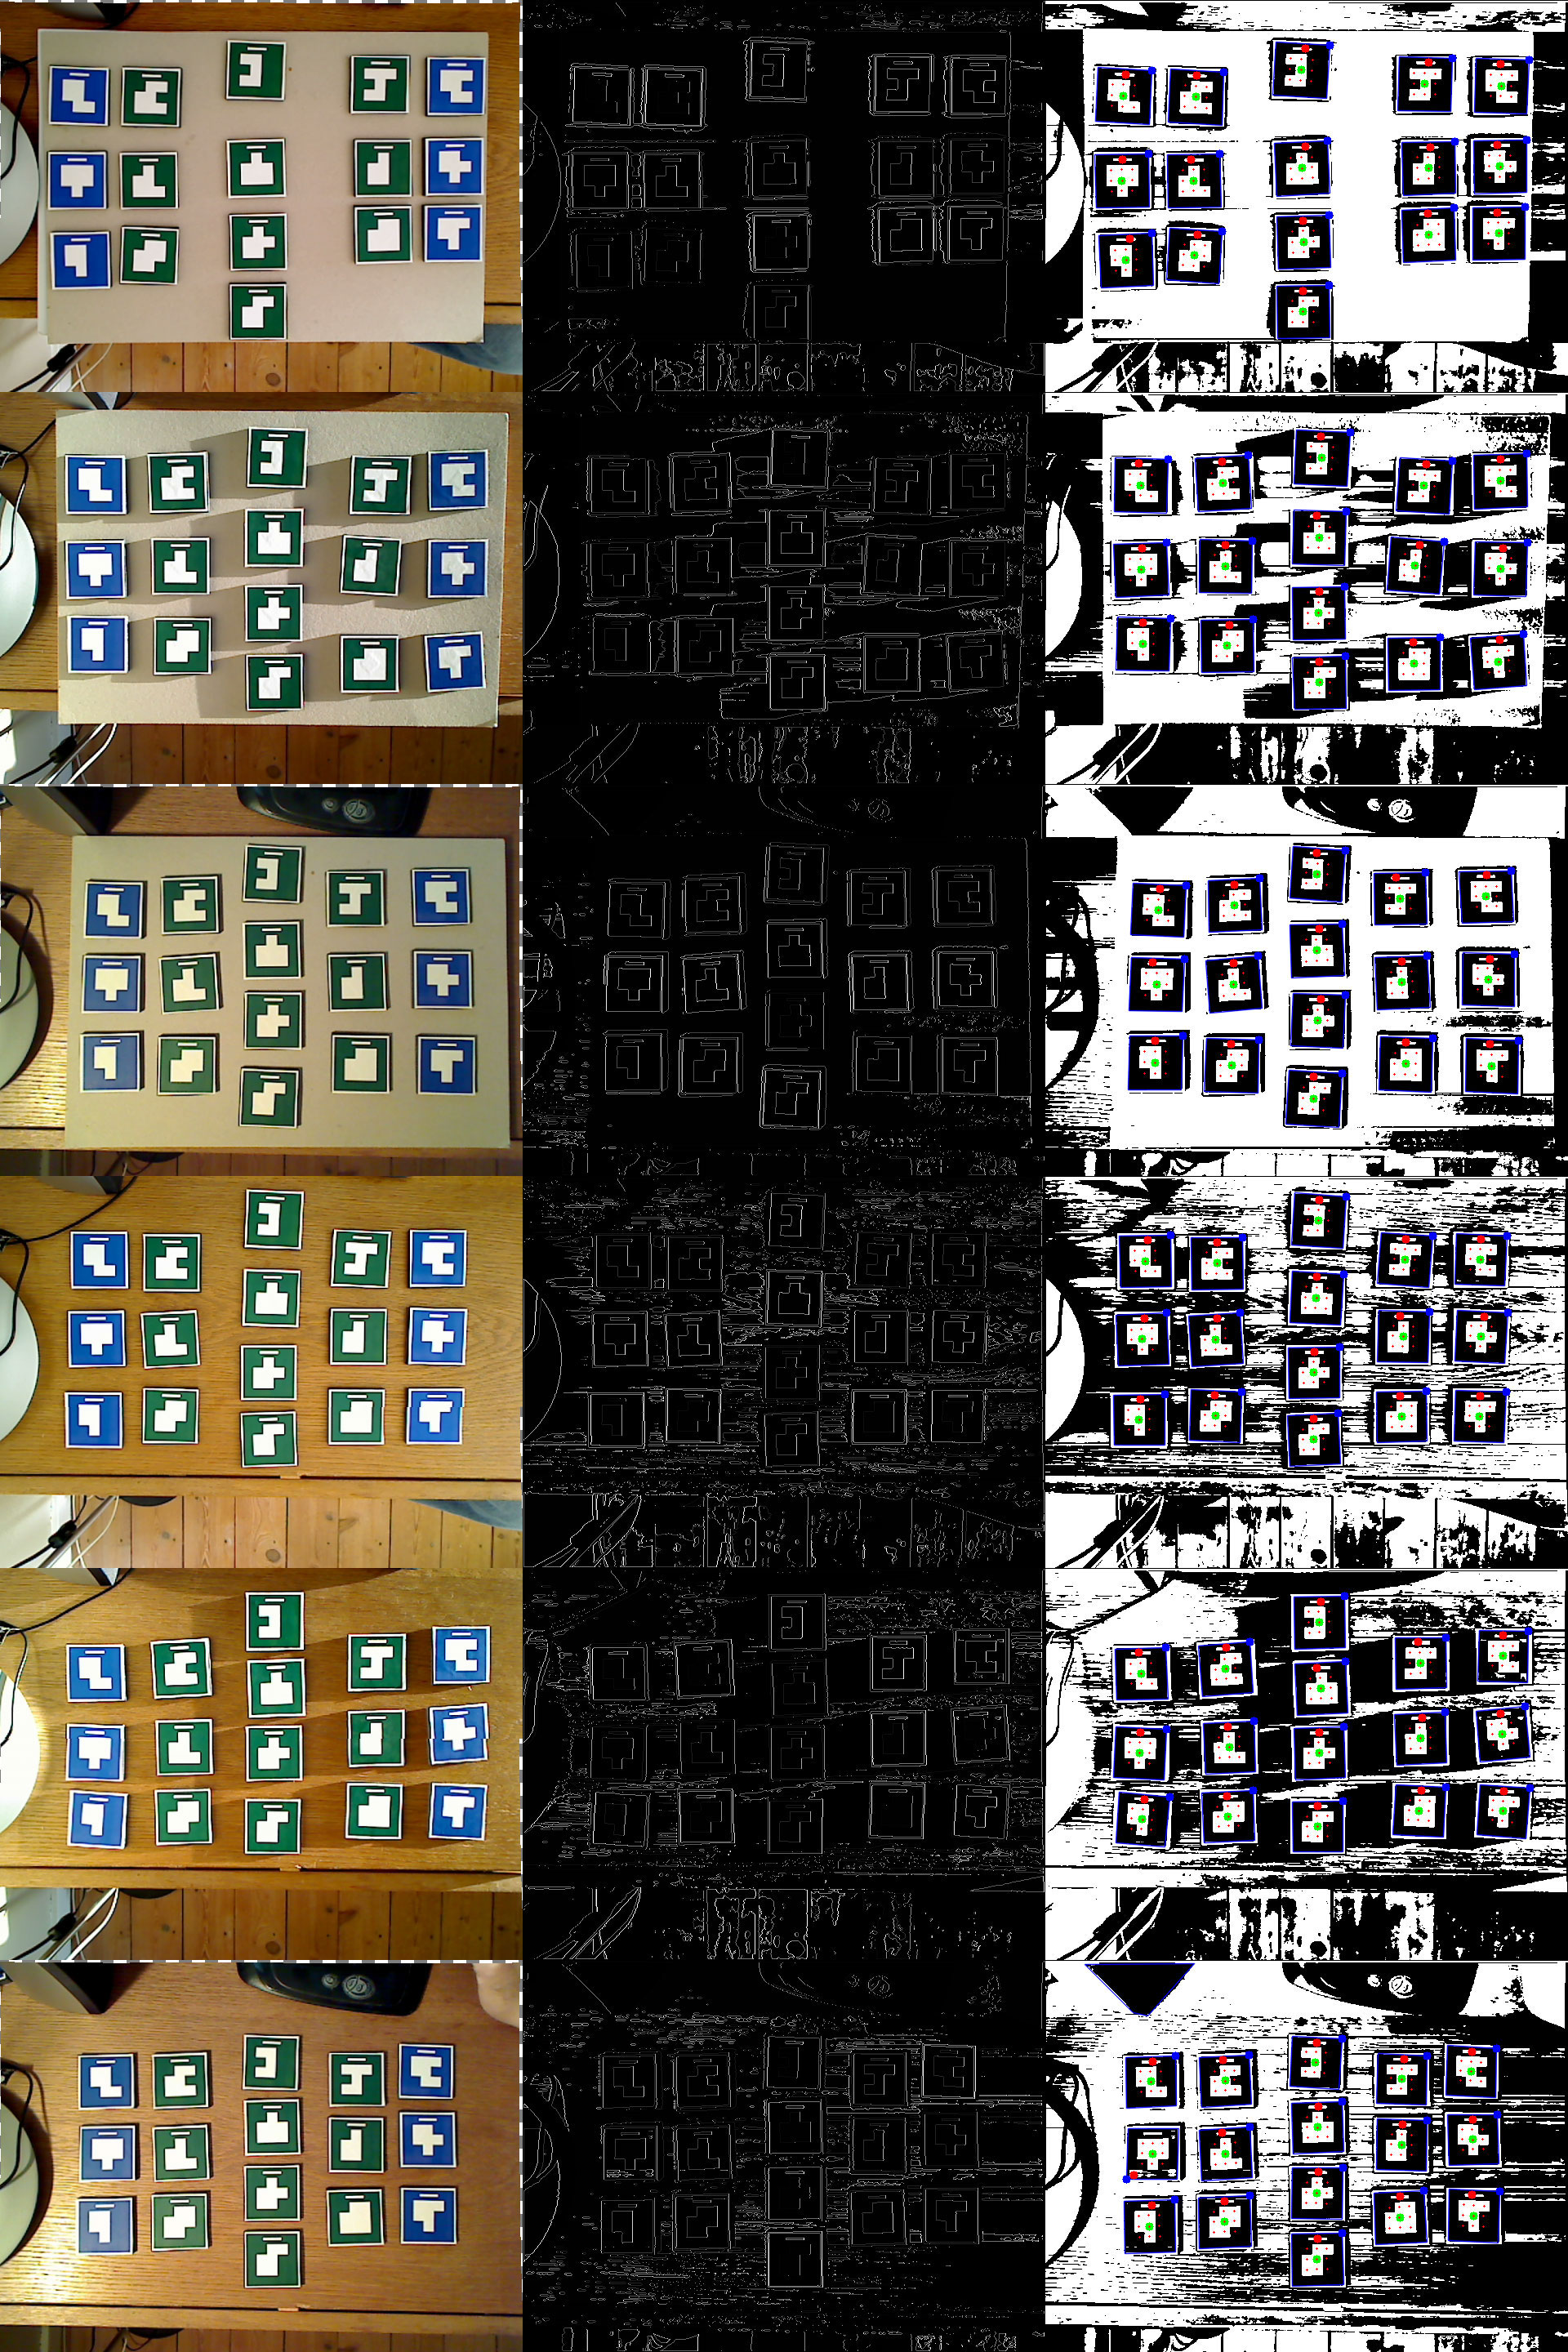 Various lighting scenarios to determine robustness of tag detection algorithm. For each scenario, three pictures are shown. Camera image (with radial distortion compensation), Edge detected image, and the final tag detection result. 1) (Top image) Regular lighting conditions, with backboard. 2) Evening (heavy shadow) lighting, with backboard. 3) Table lamp lighting, with backboard. 4) Regular lighting conditions, no backboard. 5) Evening (heavy shadow) lighting, no backboard. Table lamp lighting, no backboard.